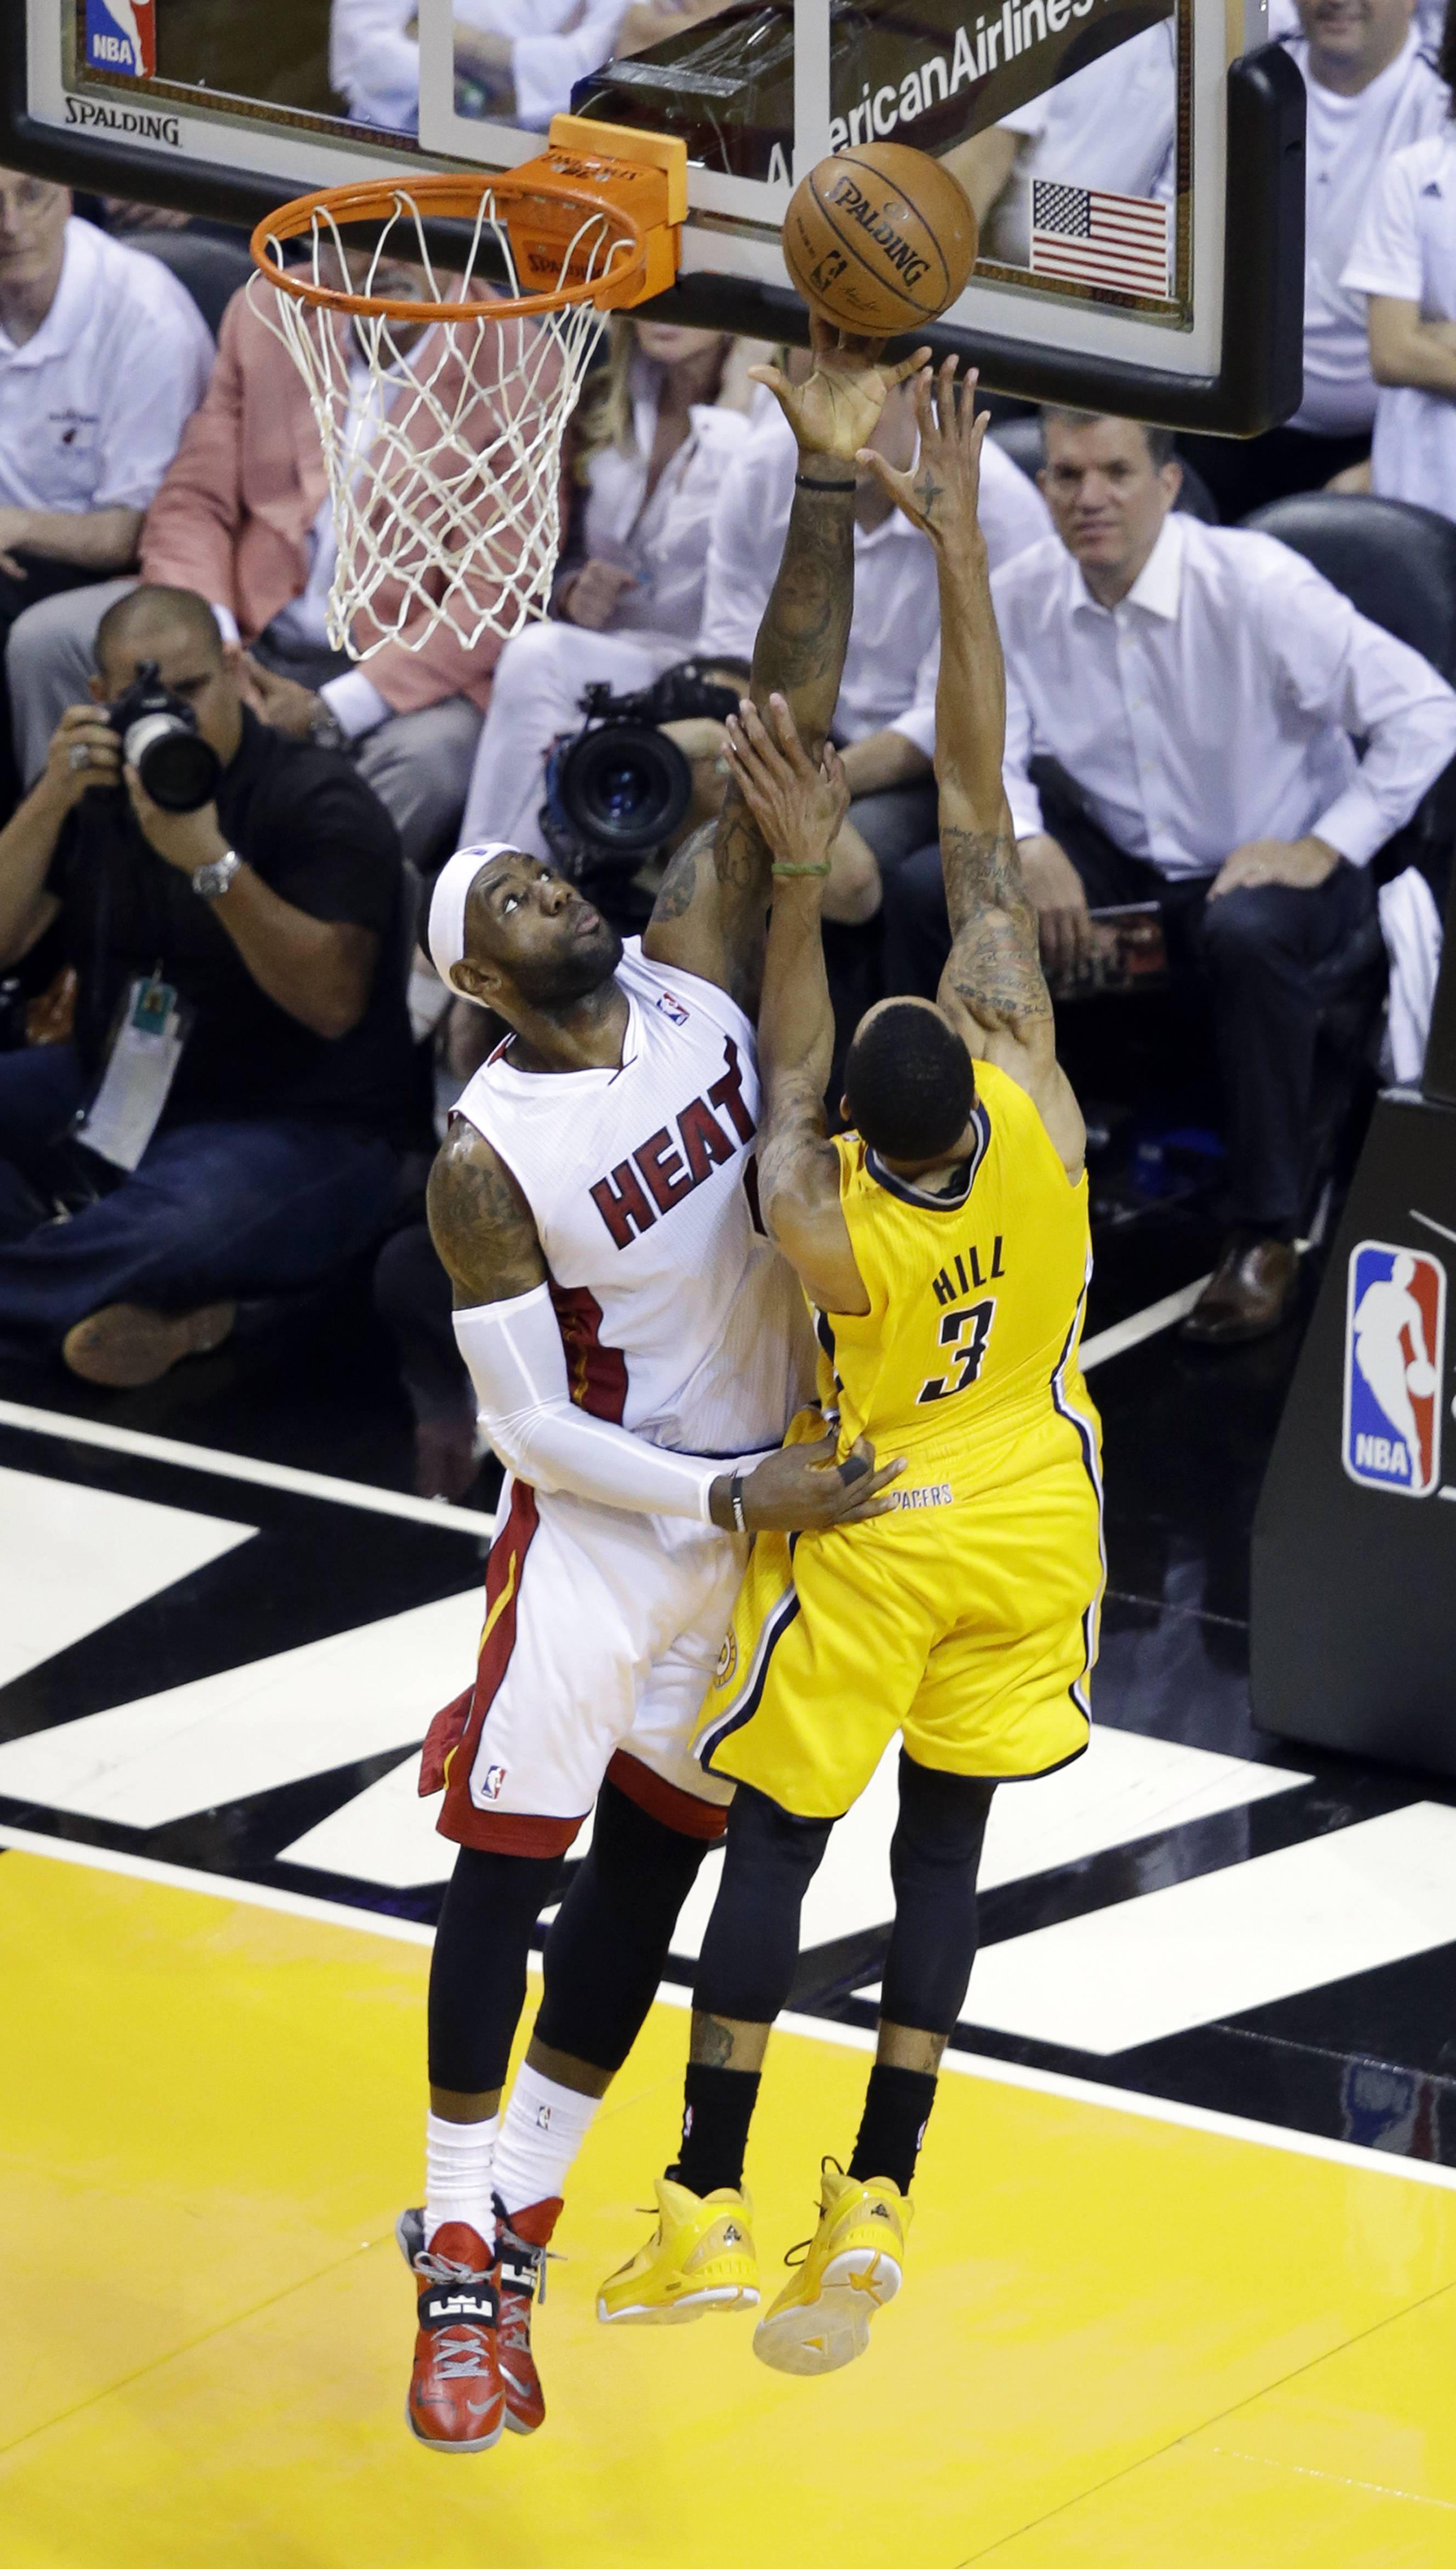 The Miami Heat became the third franchise in NBA history to reach the title series in four consecutive seasons, a laugher of a conference-title finale getting them there again Friday night. LeBron James and Chris Bosh each scored 25 points, and Miami eliminated the Pacers for the third straight year with a 117-92 romp in Game 6 of the East championship series.